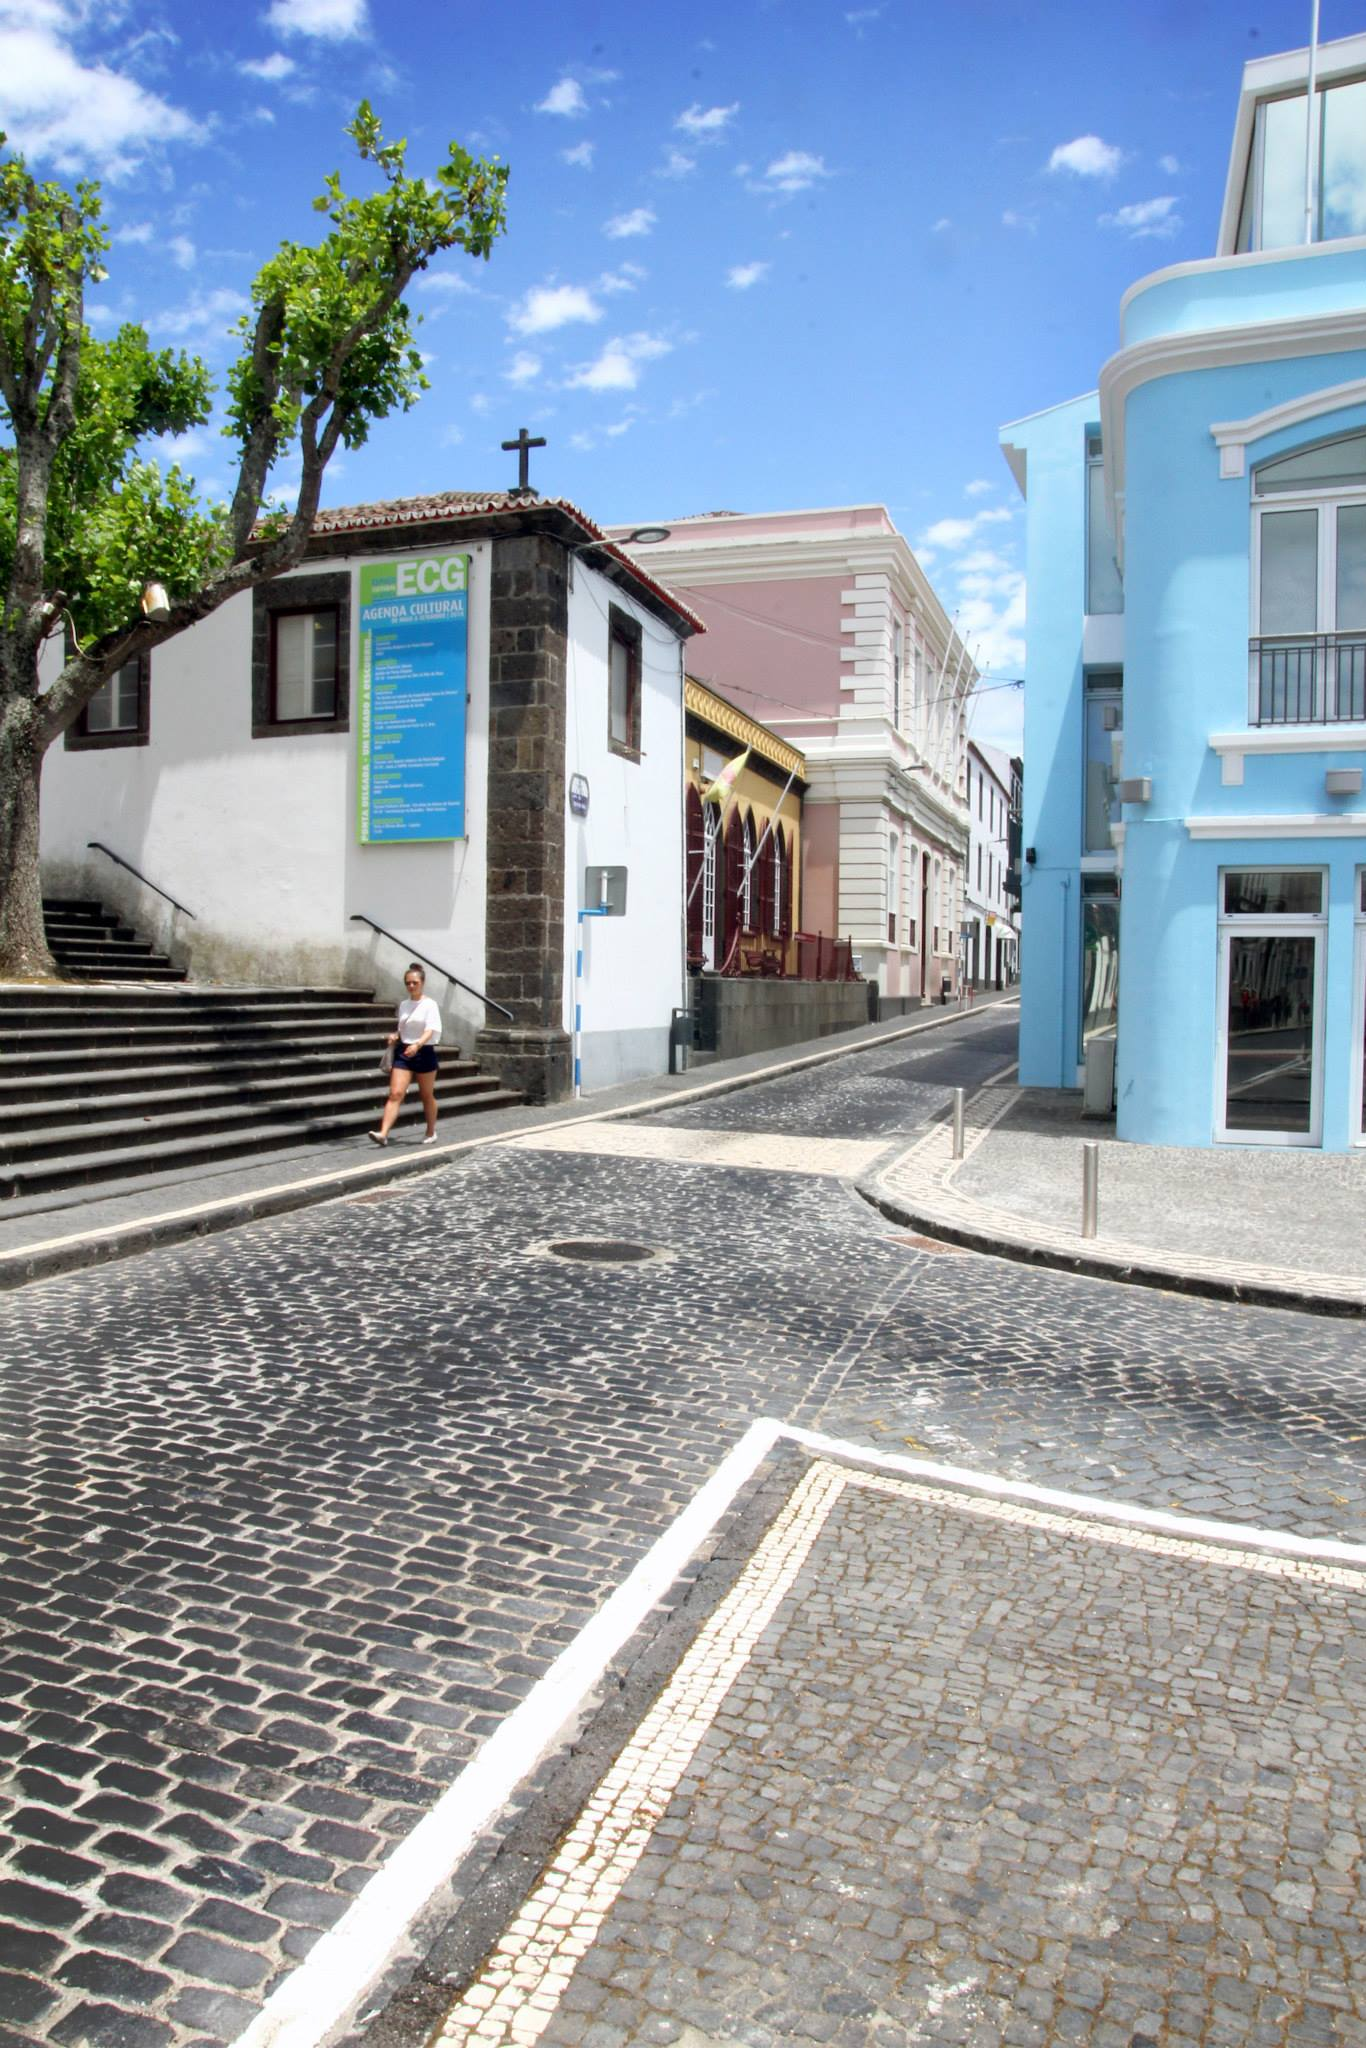 Downtown ponta delgada